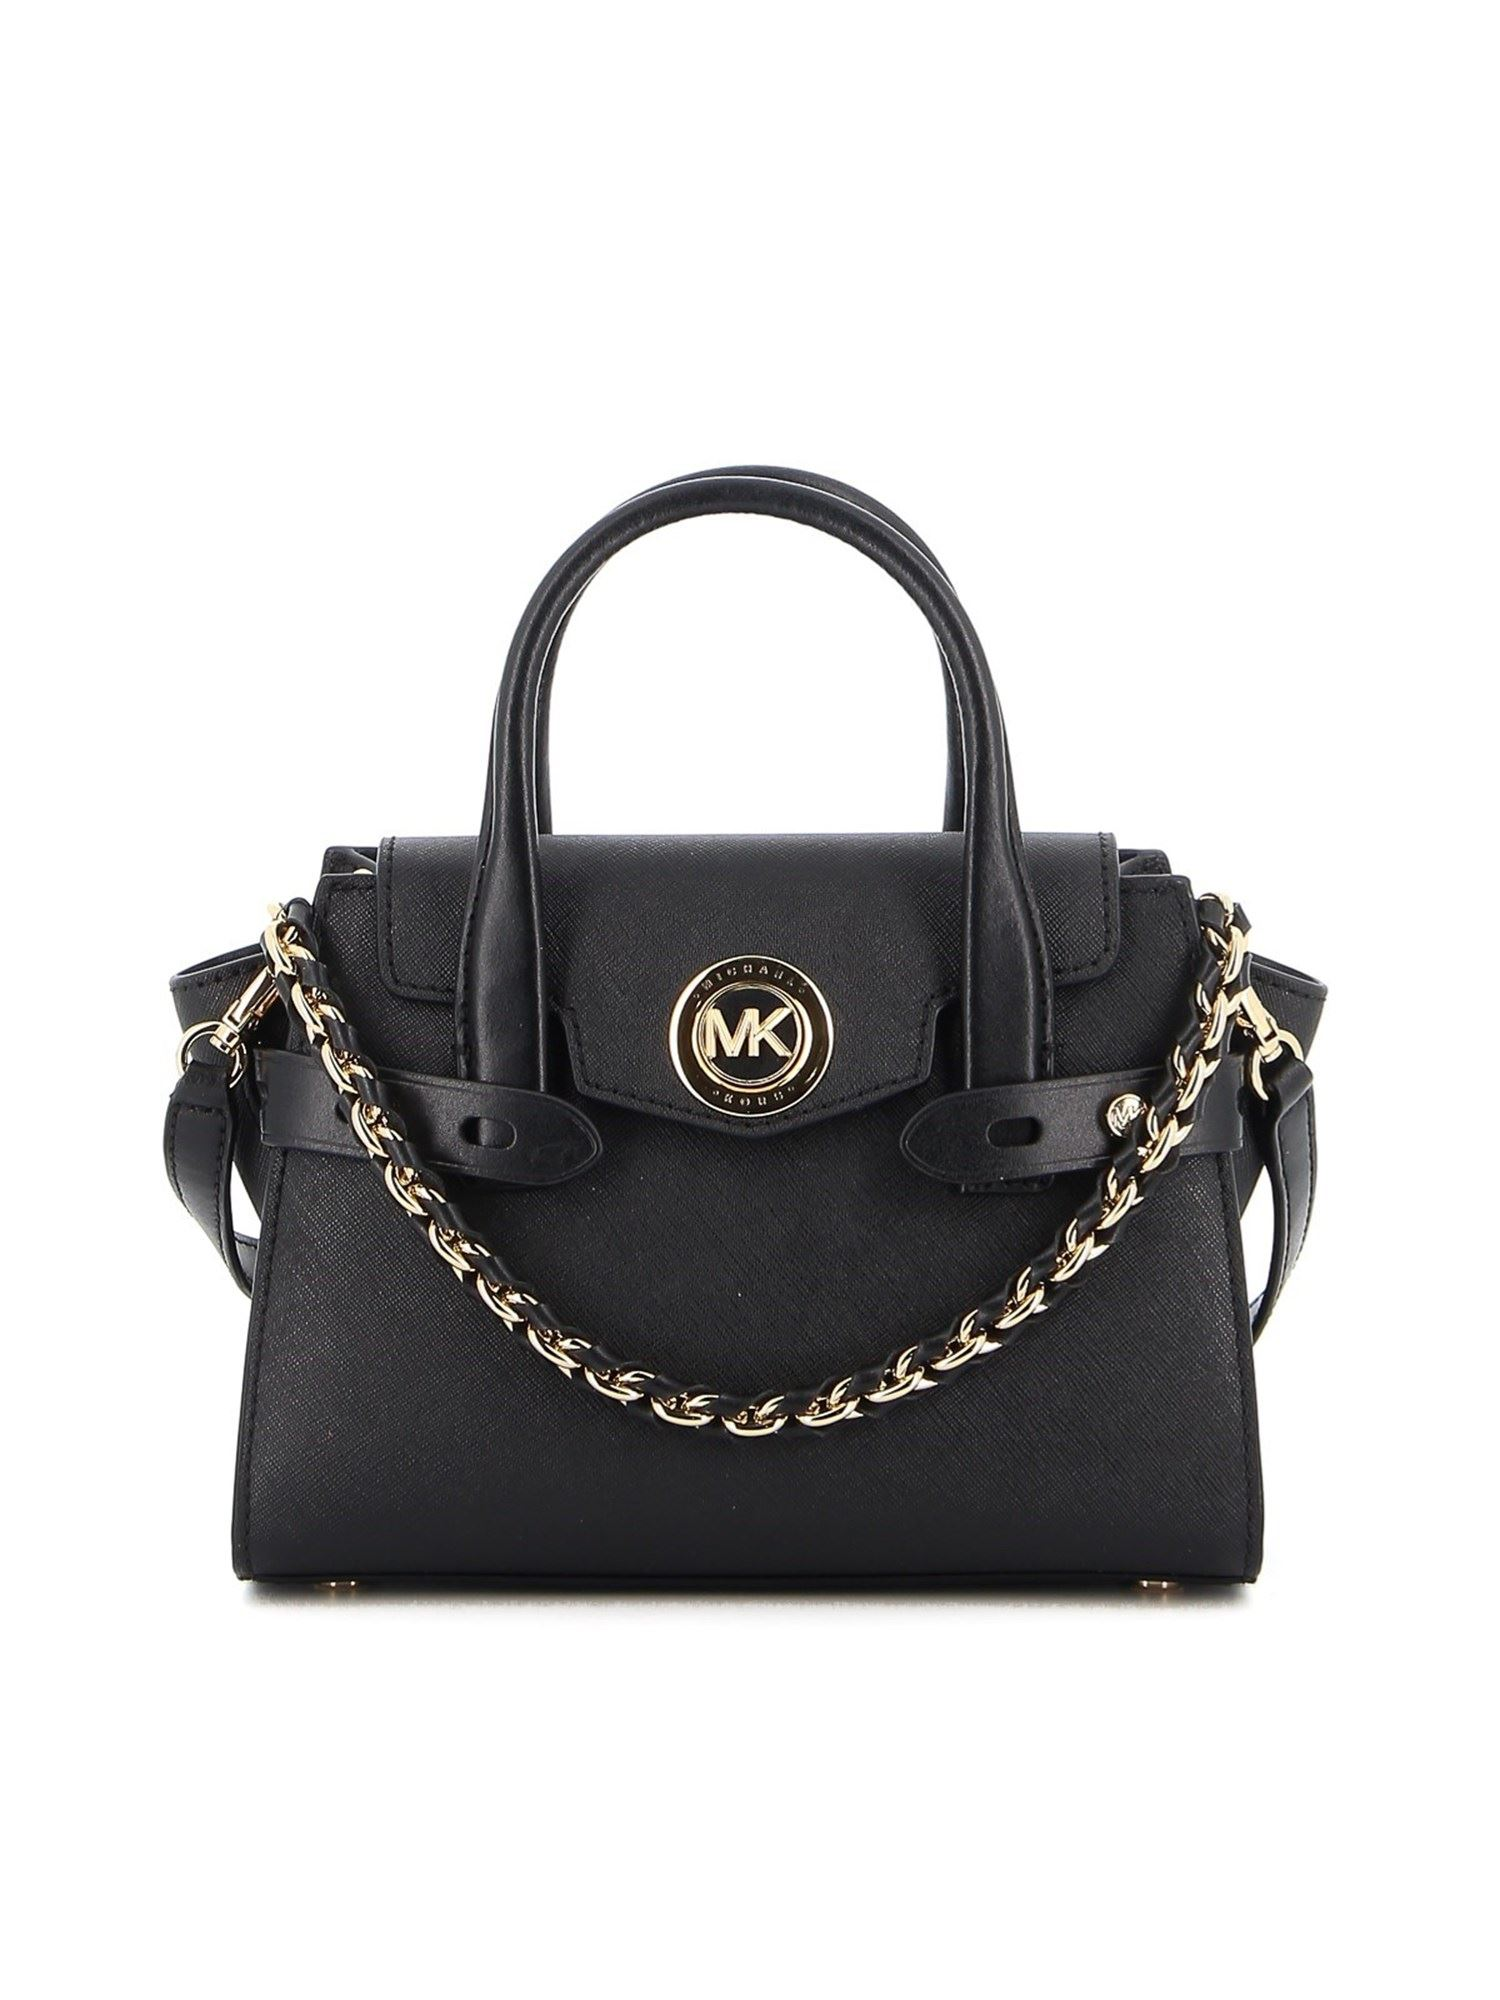 Michael Kors CARMEN EXTRA-SMALL LEATHER BAG IN BLACK